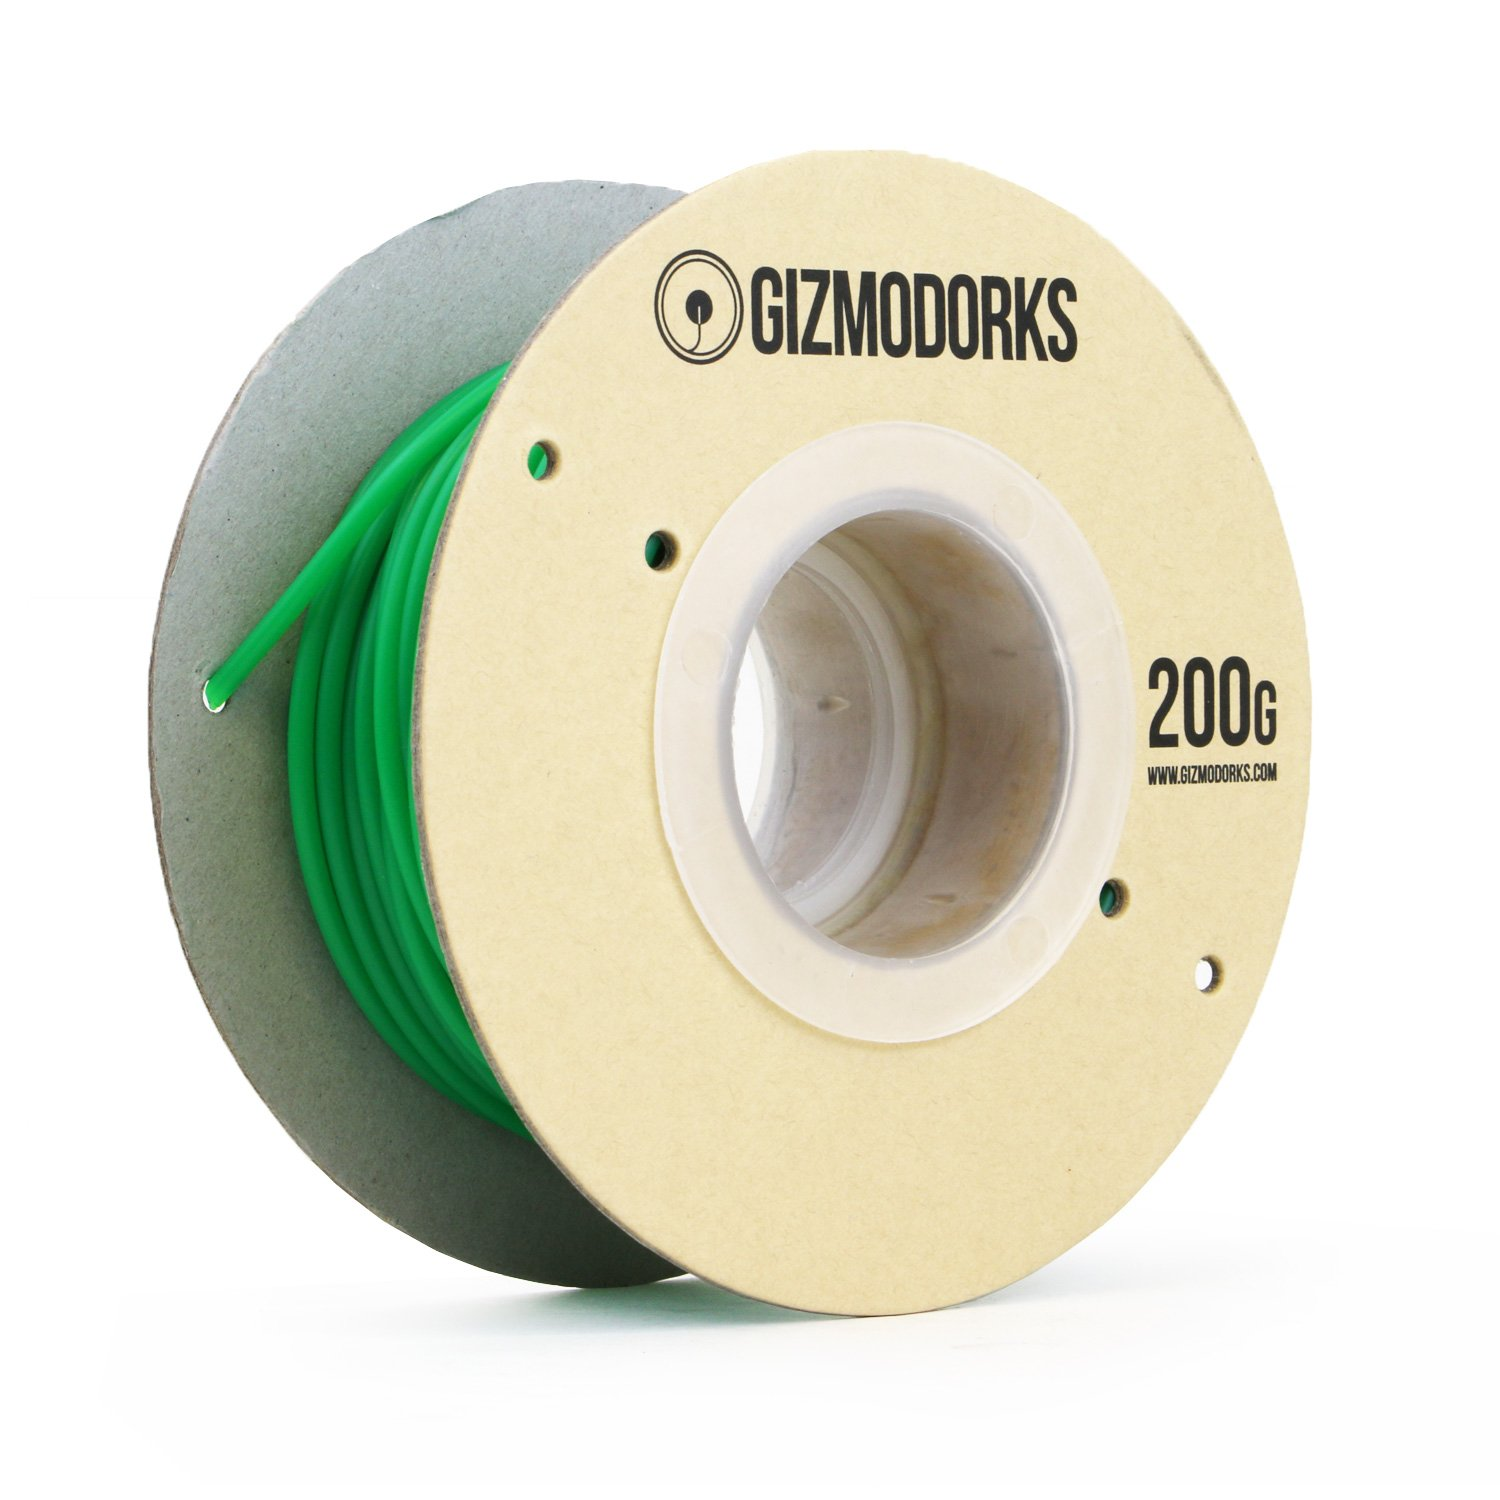 Gizmo Dorks ABS Filament for 3D Printers 1.75mm 200g Green